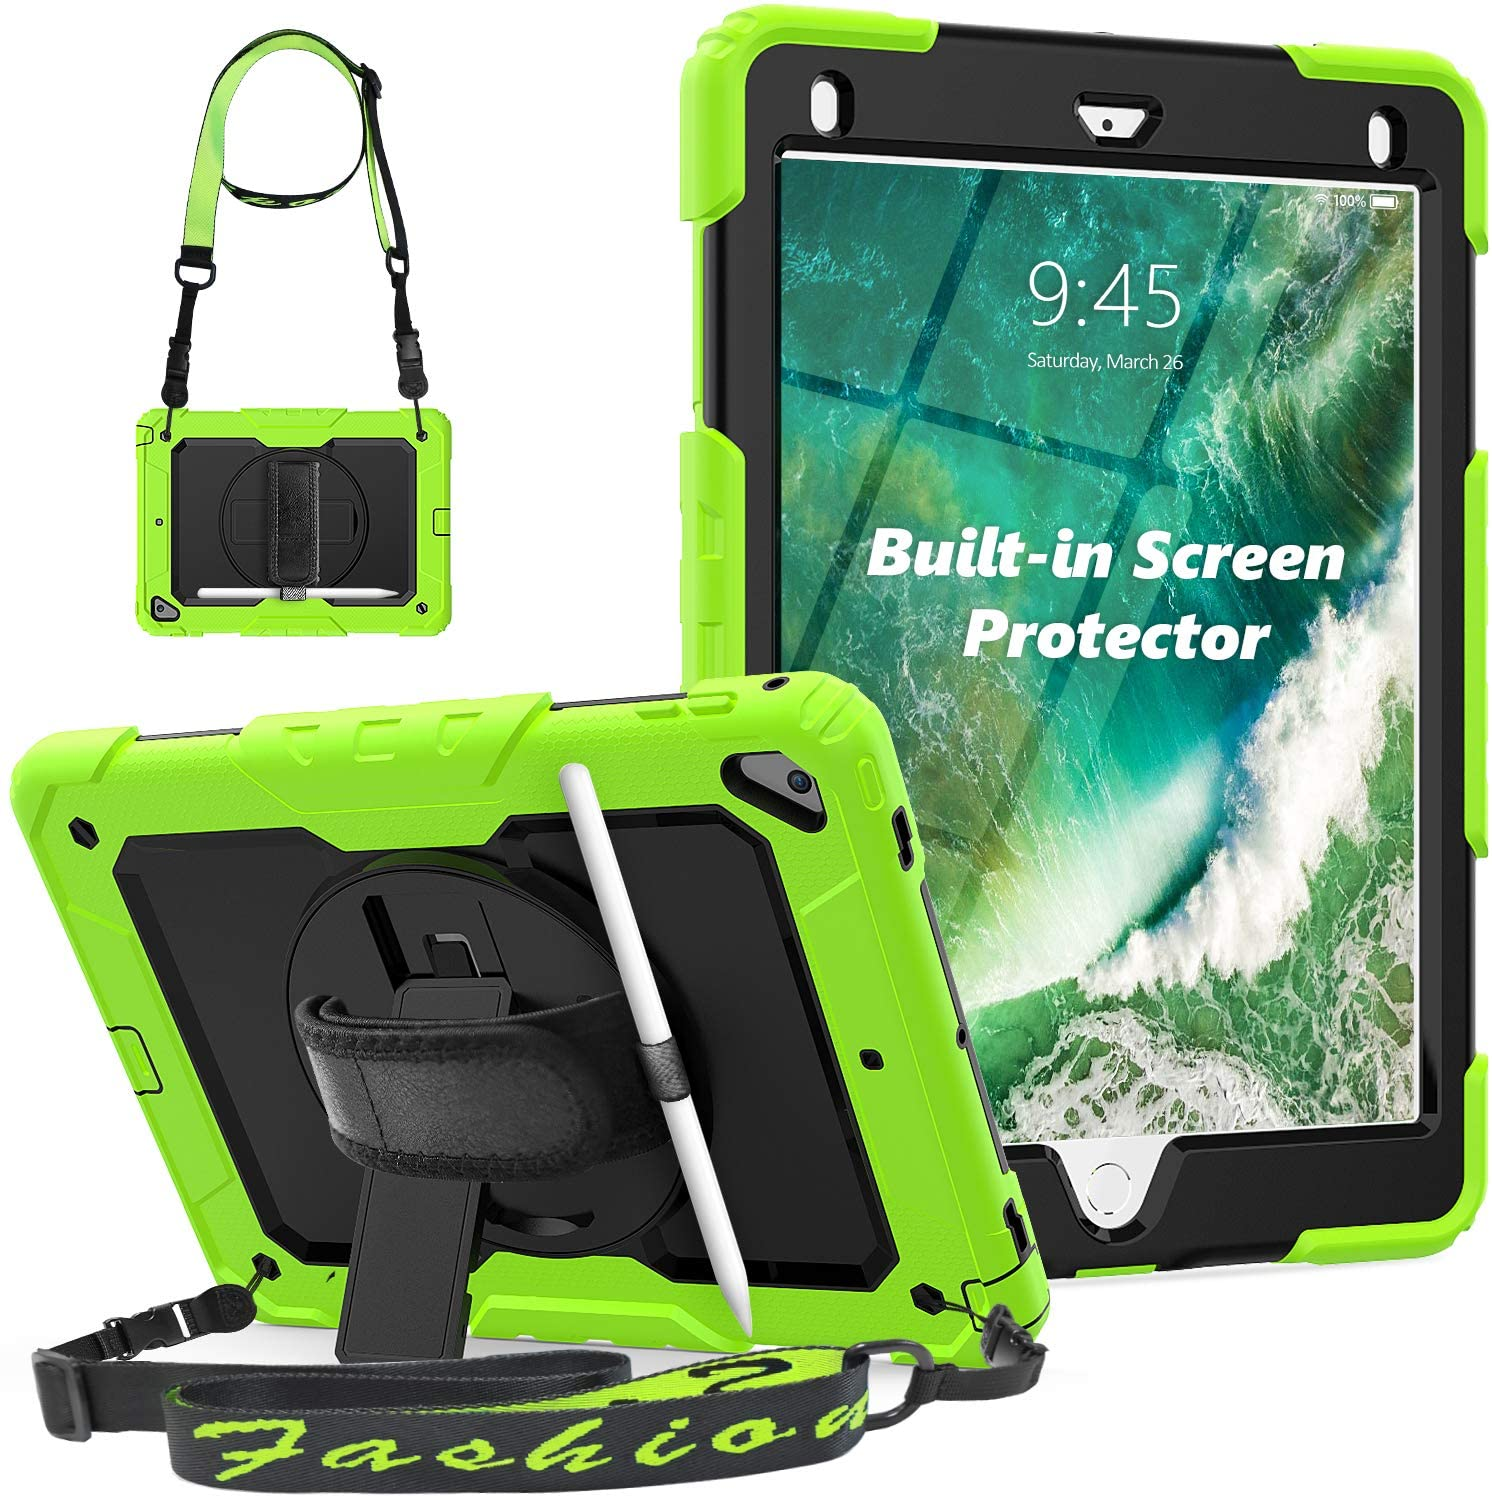 iPad Air 2 Case, iPad 6th/5th Generation Case, HXCASEAC [Sturdy] Shockproof Case with 360 Rotating Stand, Screen Protector, Stylus Holder, Shoulder Strap, Hand Strap for iPad A1822, A1566, A1893-Green